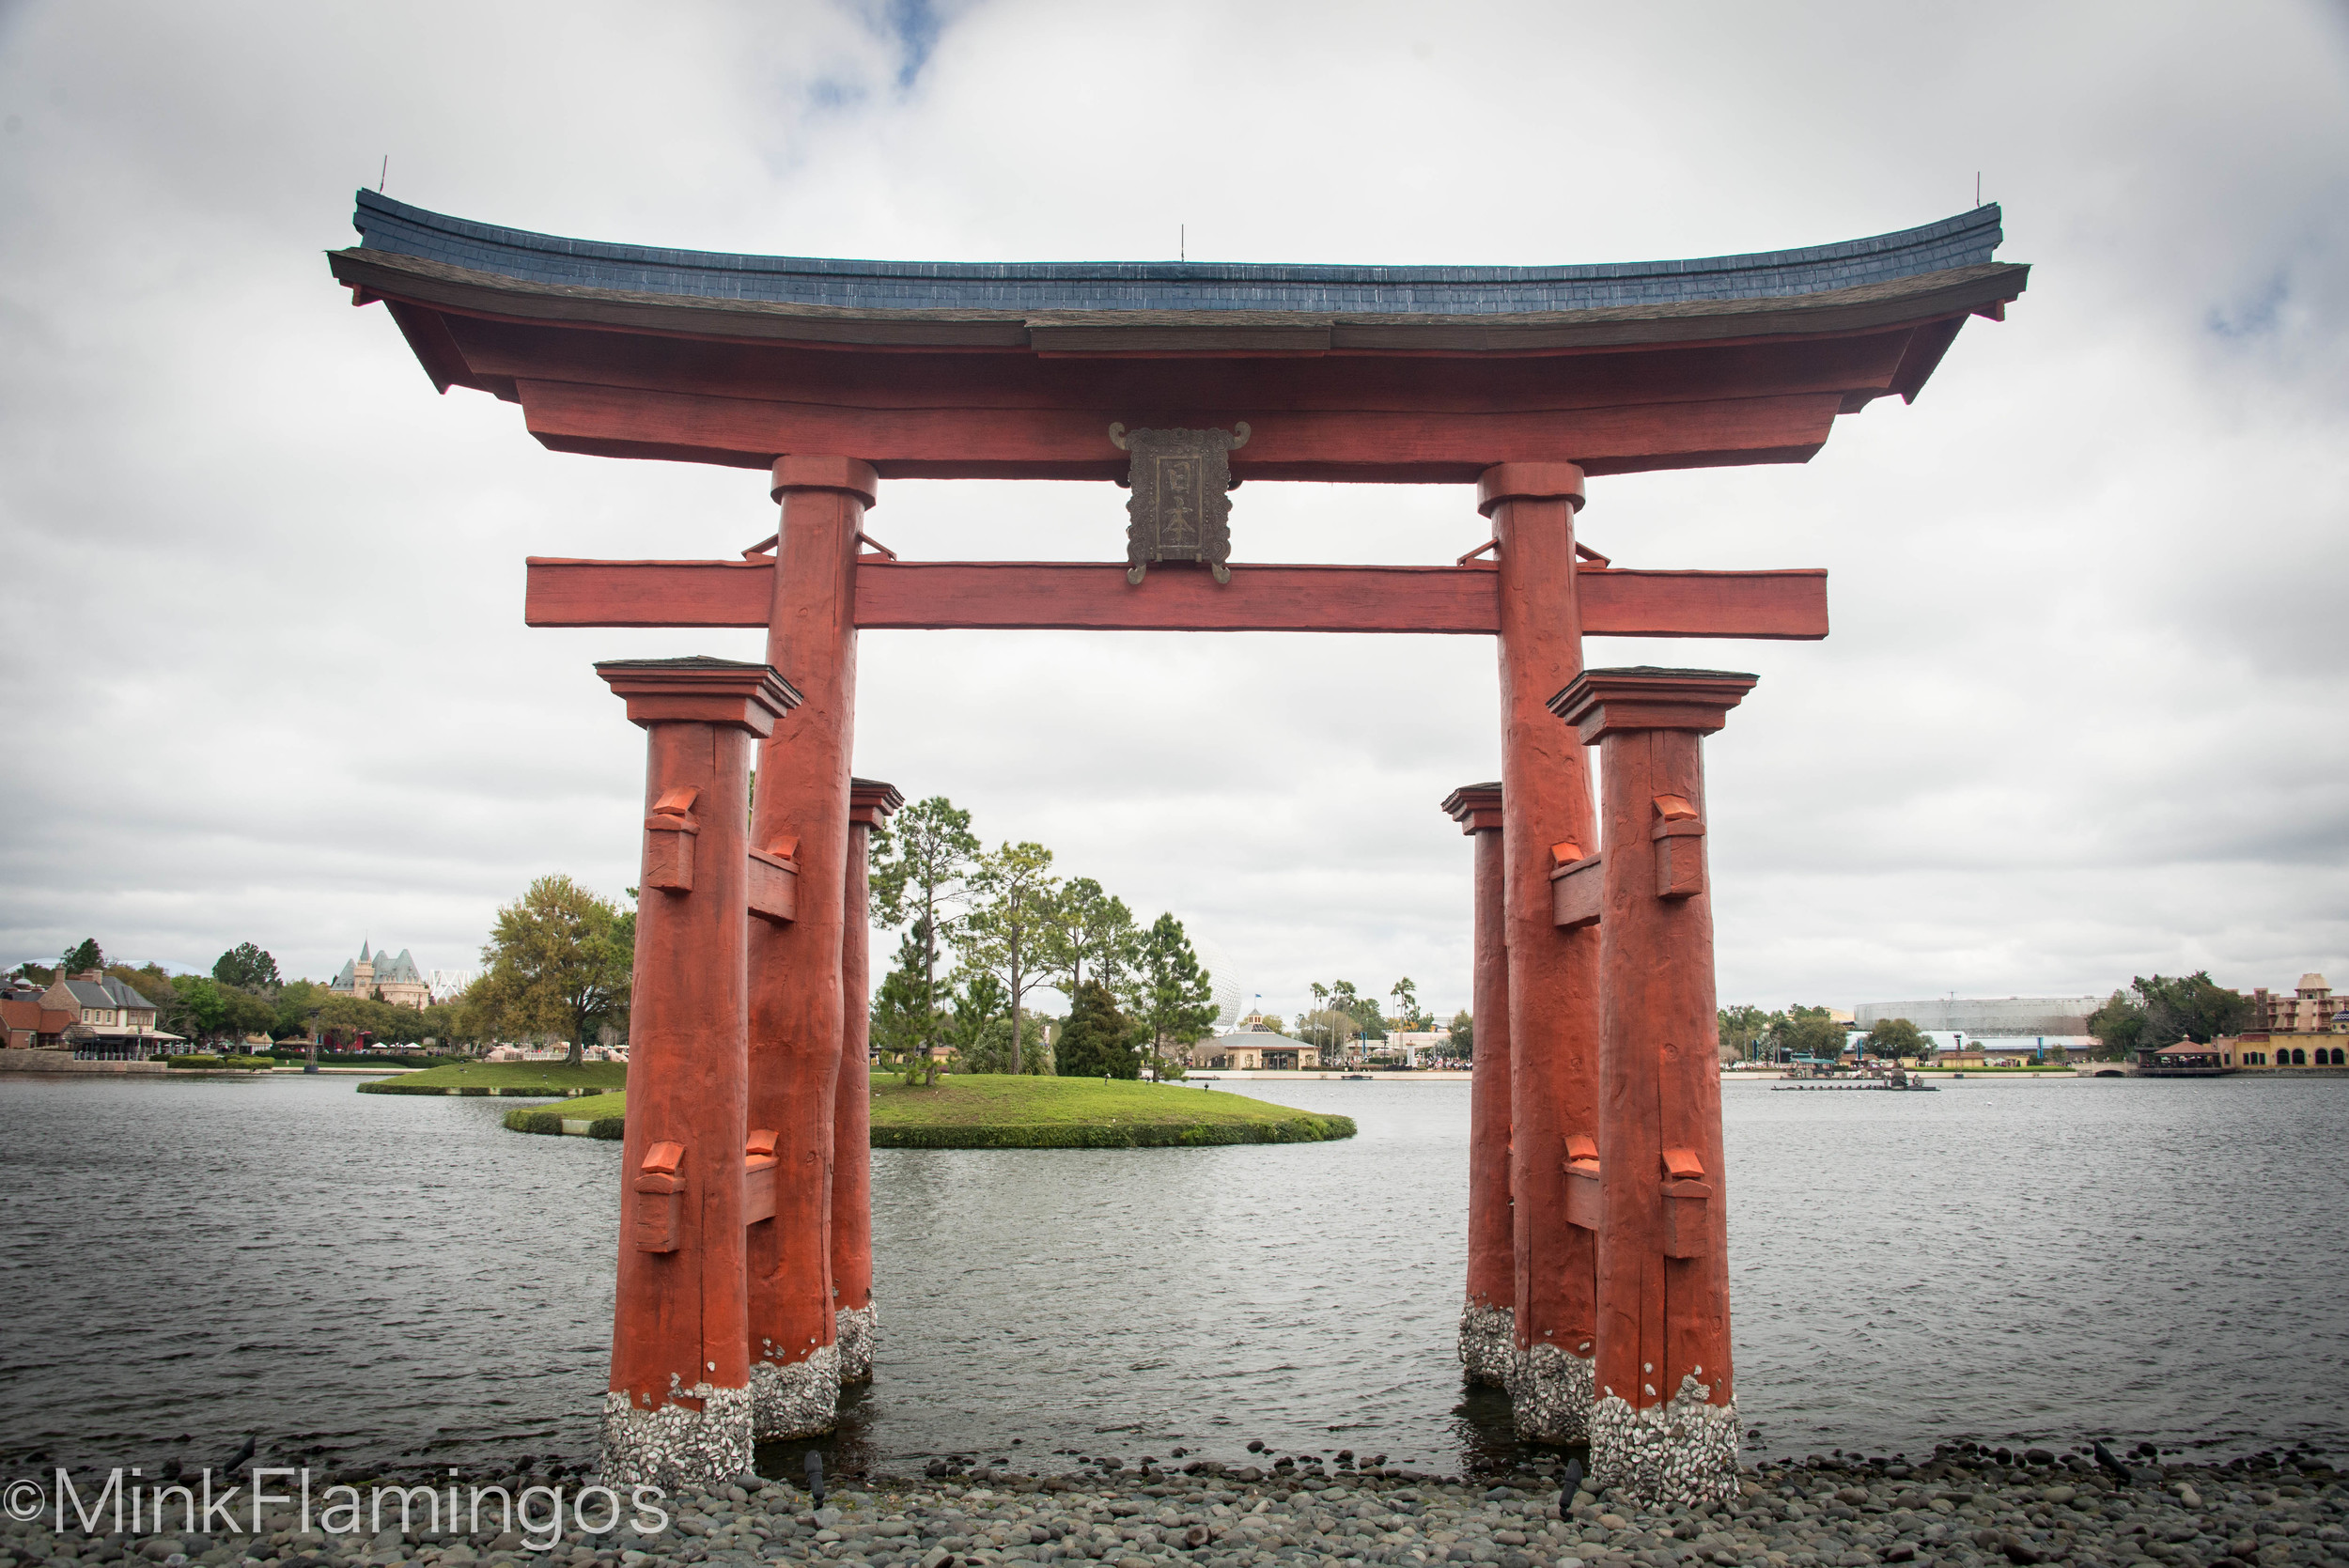 Japan by way of Florida